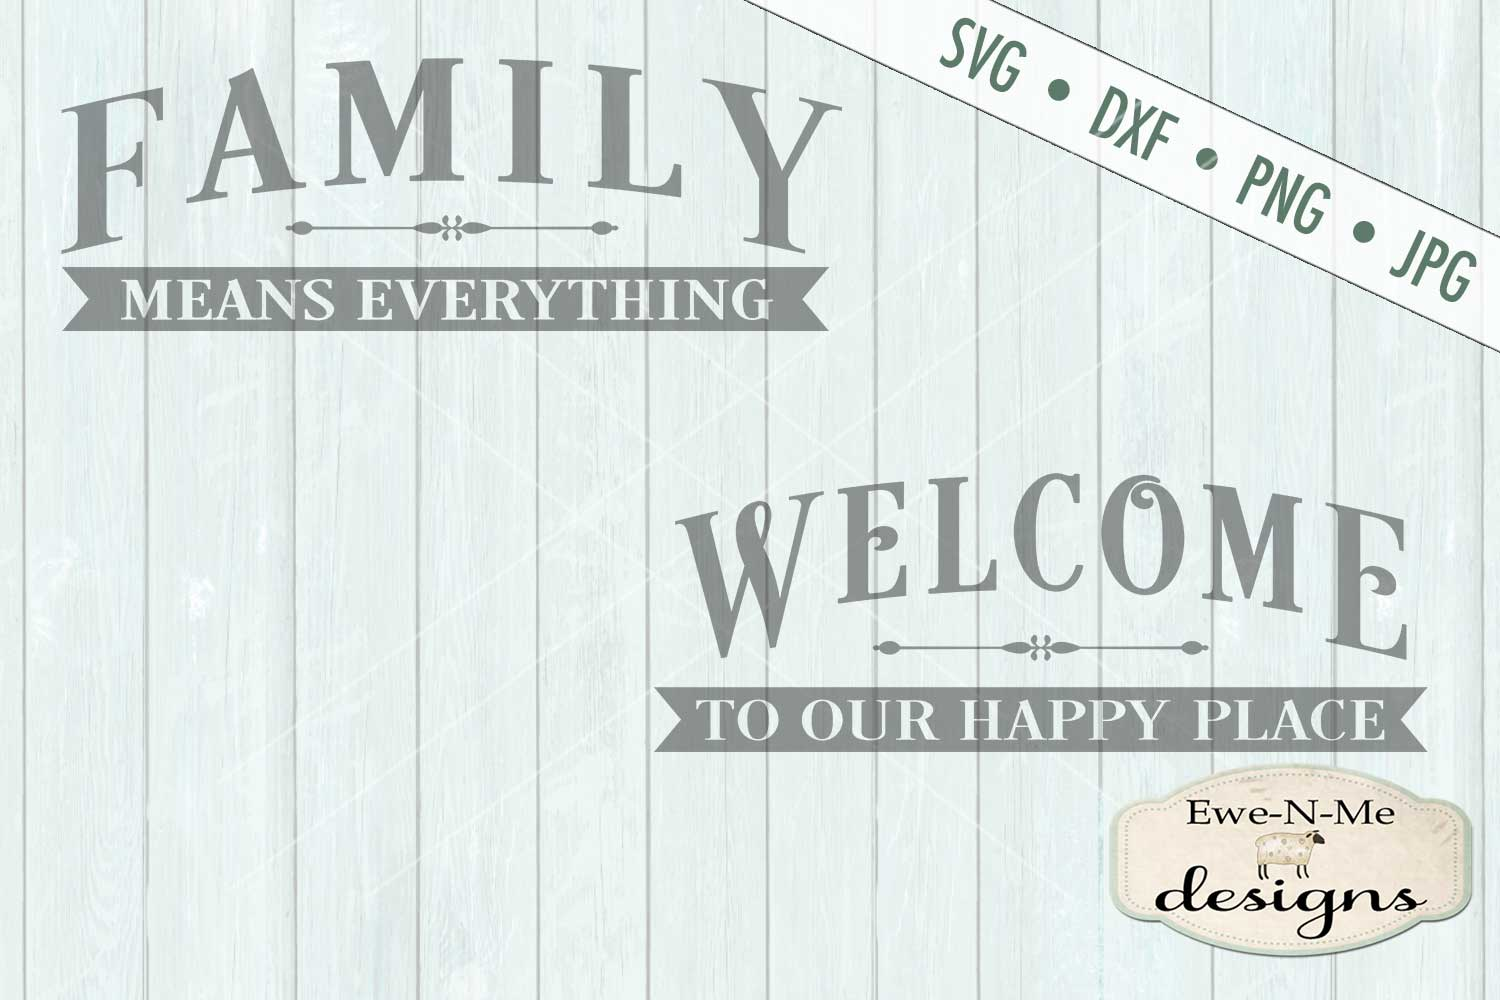 Family Means Everything - Welcome to our Happy Place SVG DXF example image 2